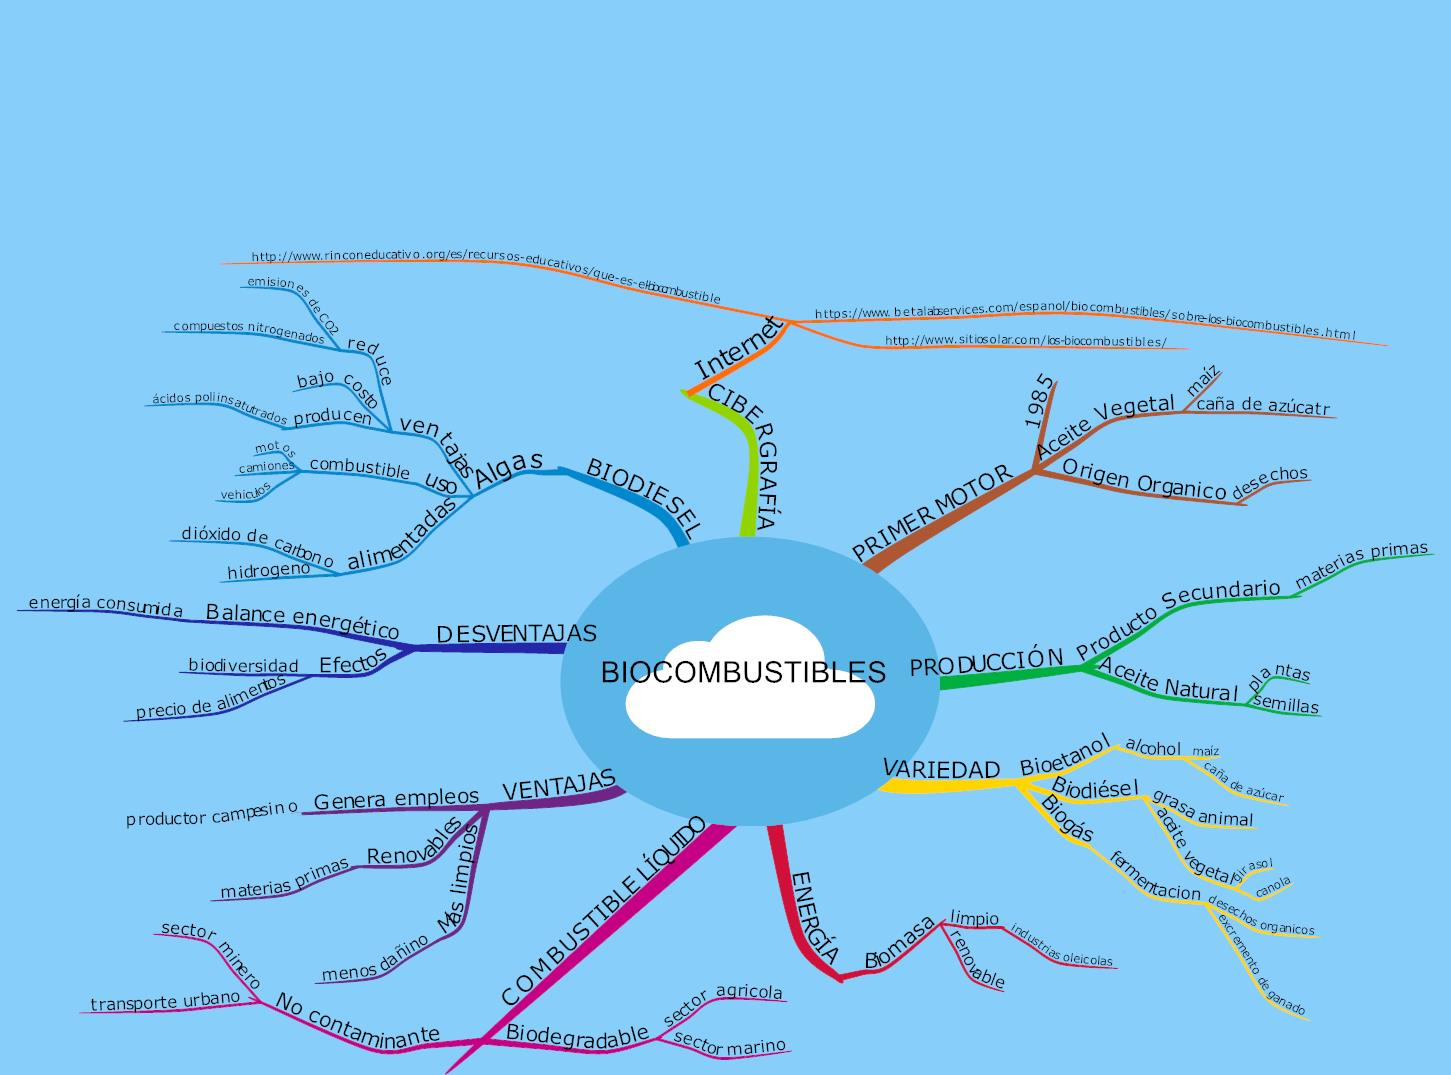 free concept map software water sport luge electrical wire wiki cover 88241 free concept map software - Concept Map Software Free